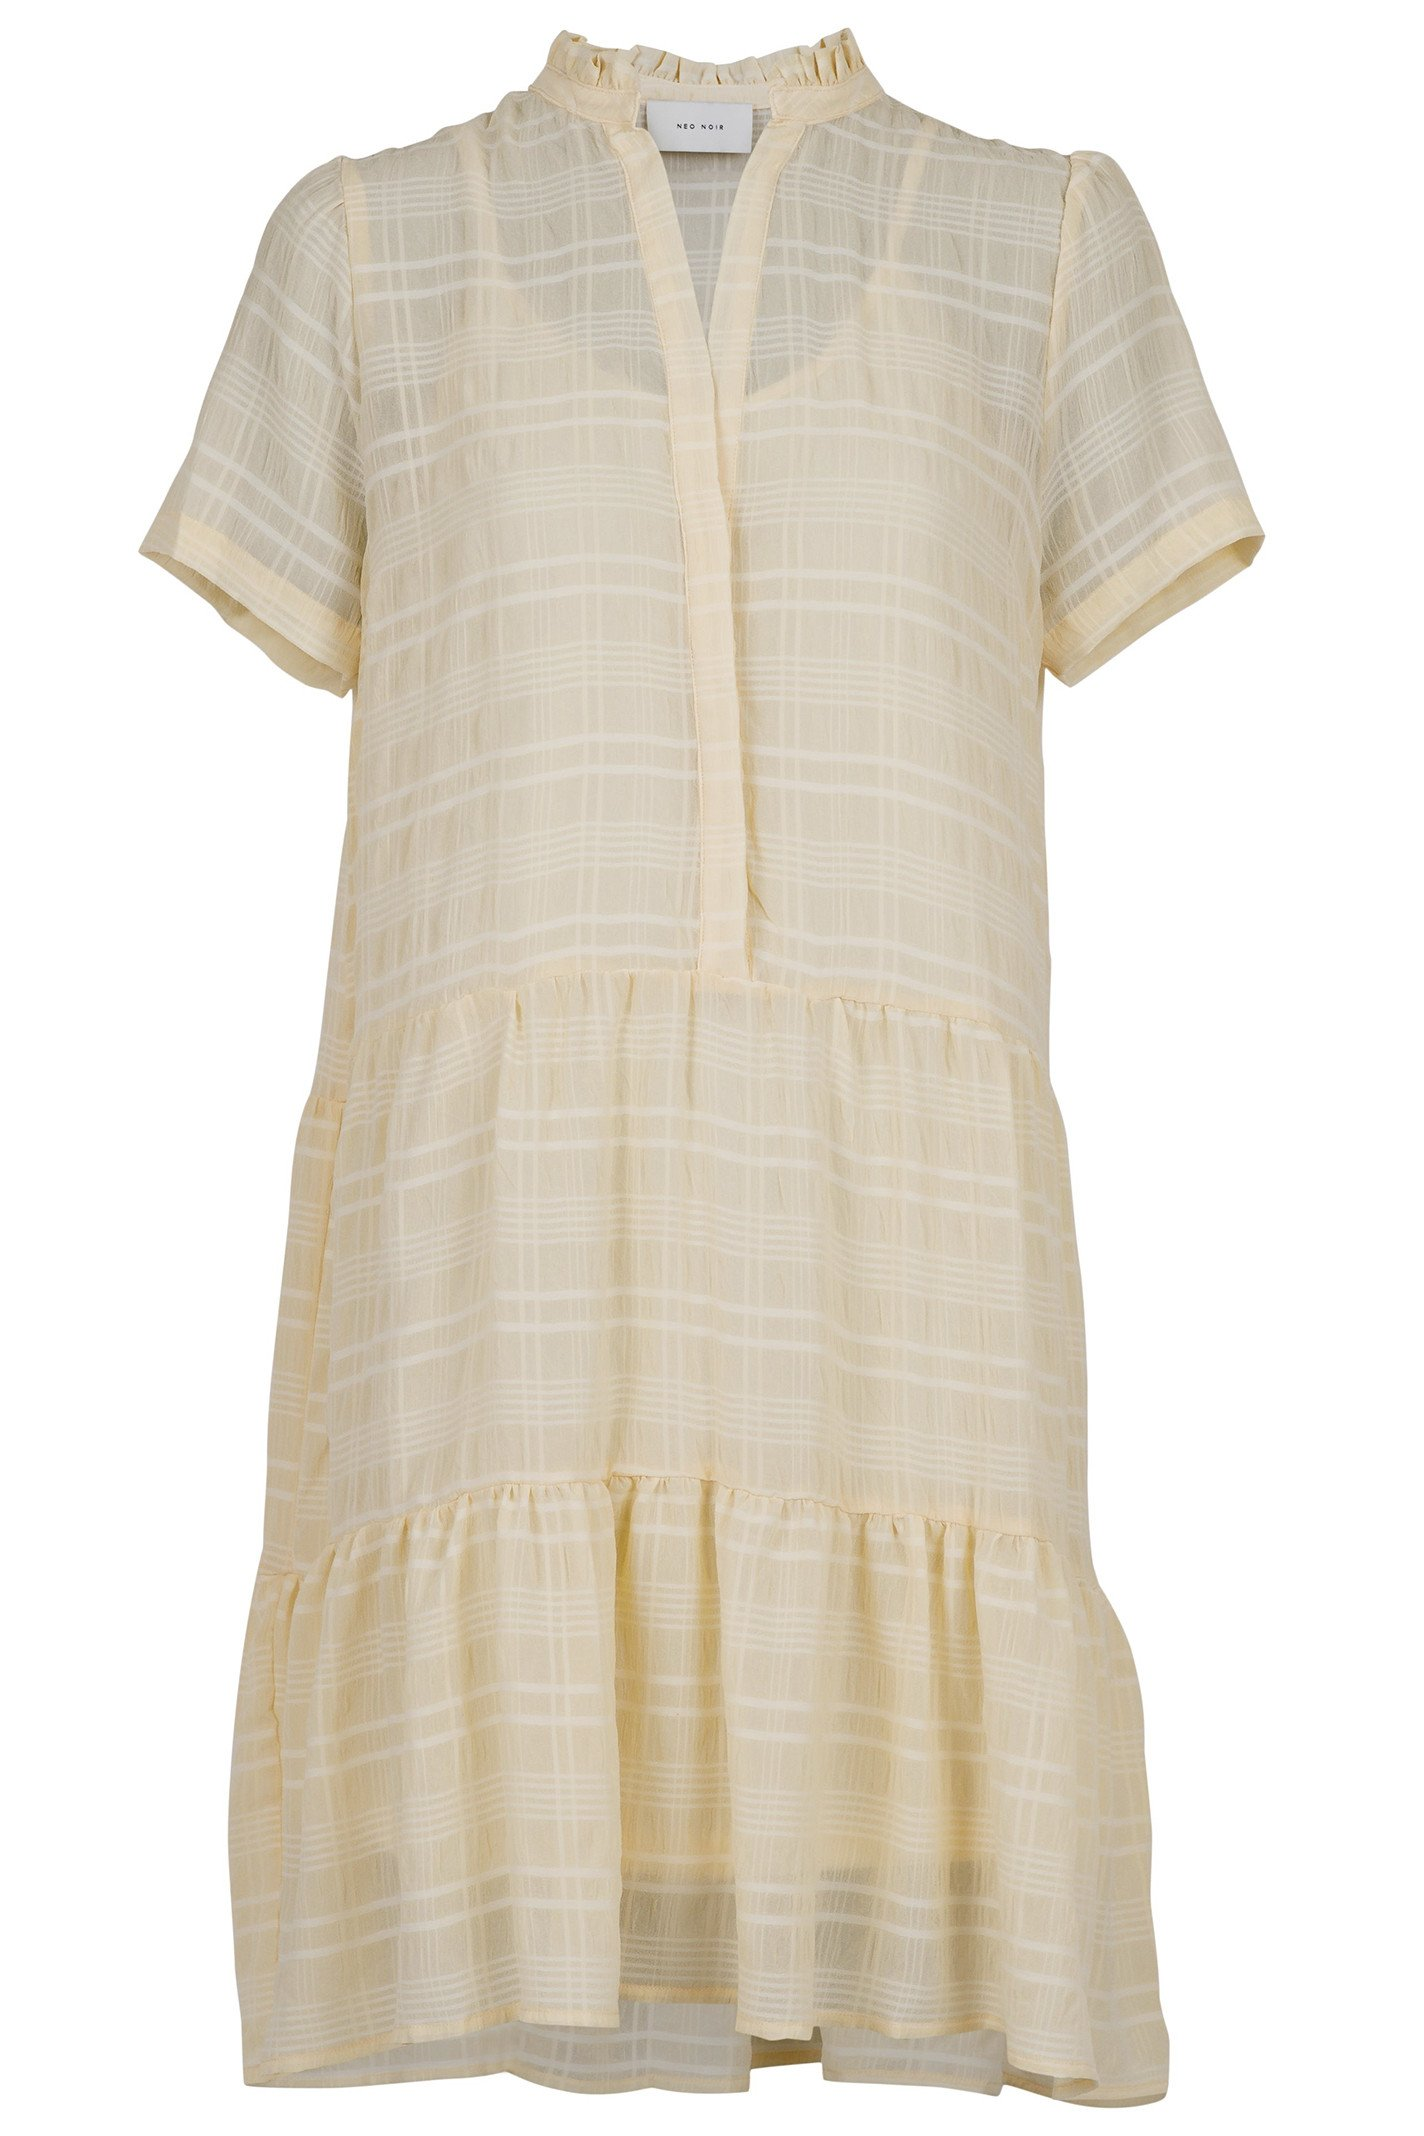 Neo Noir Yara Stripe Dress - Sand